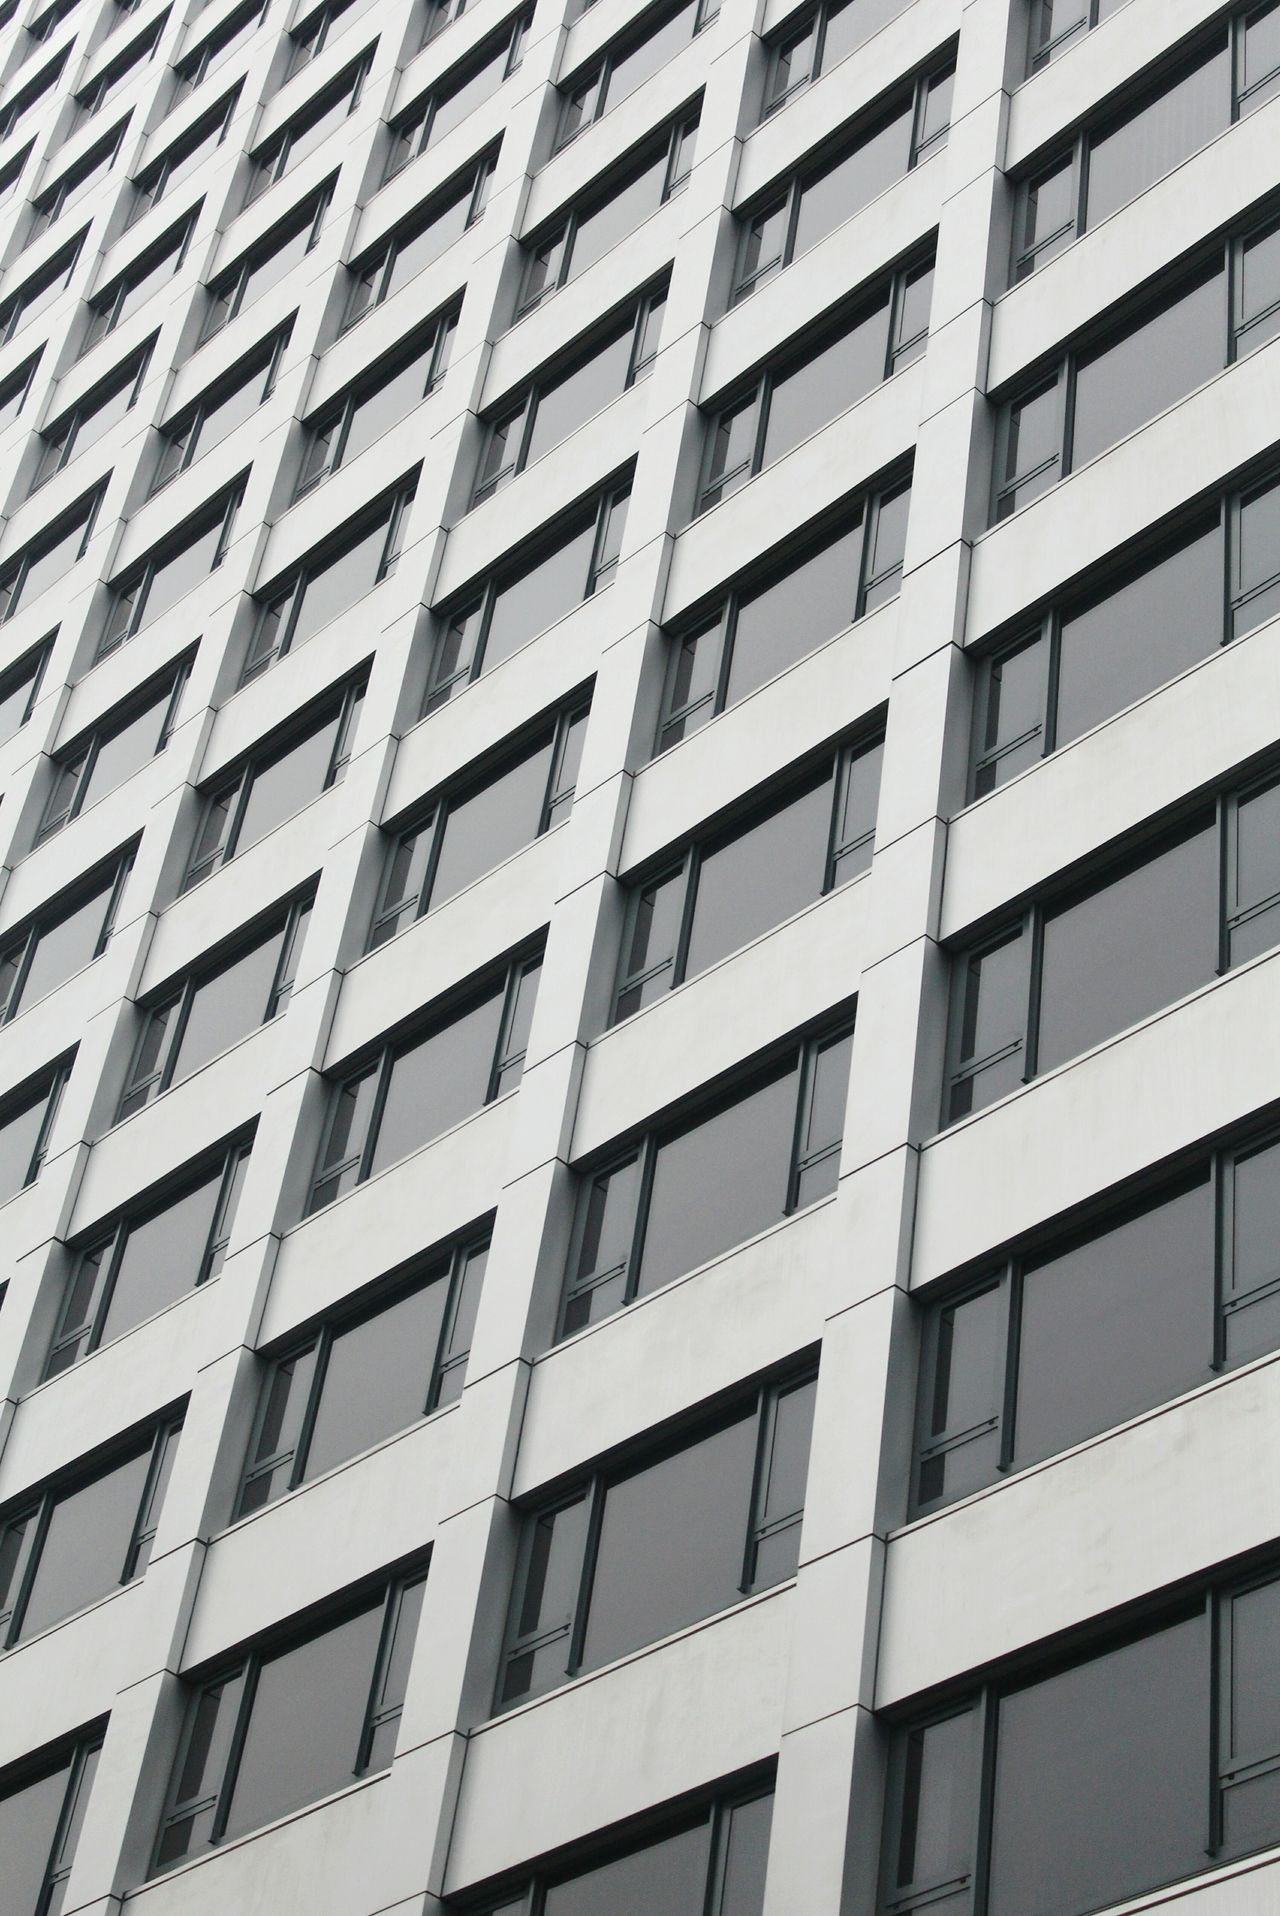 Building Exterior Architecture Built Structure Window Full Frame Repetition Pattern Apartment Outdoors City Low Angle View No People Infrastructure Backgrounds Day Minimalist Architecture Minimalist Looking Up Windows Pattern, Texture, Shape And Form Building Feature Façade Tower Skyscraper Modern